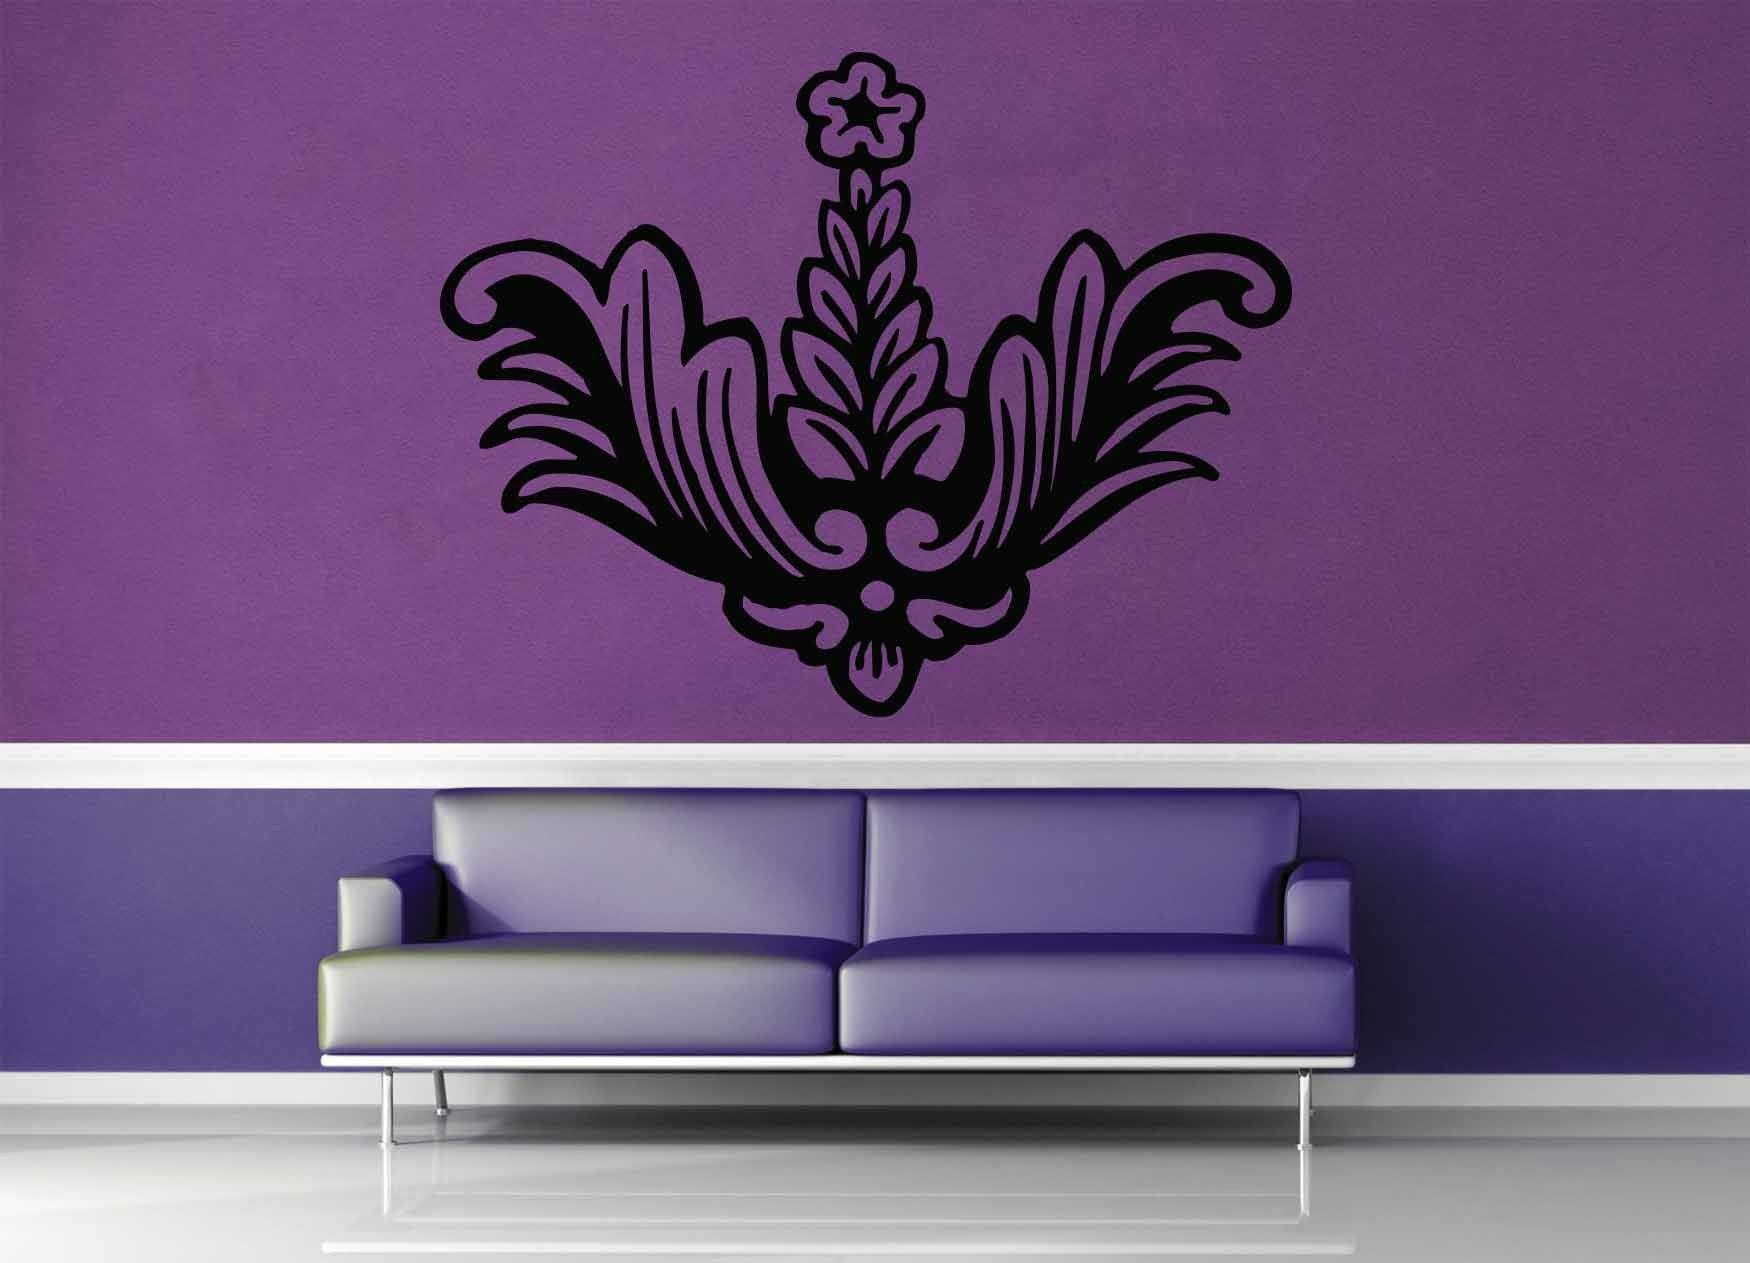 Flower - Wall Decal - No 2